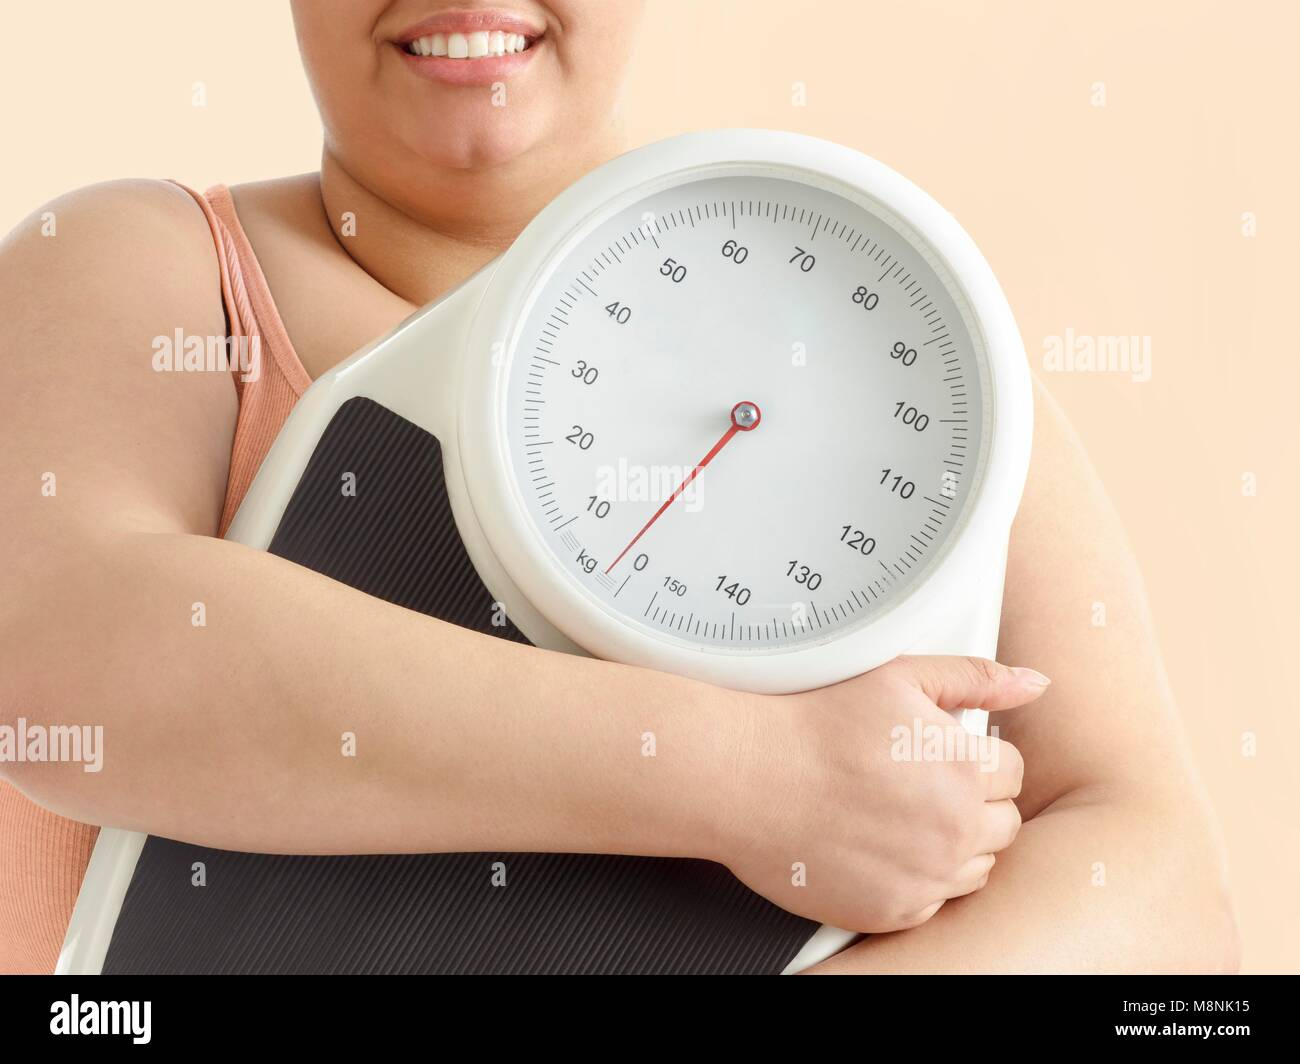 Overweight woman holding weighing scales, smiling. - Stock Image